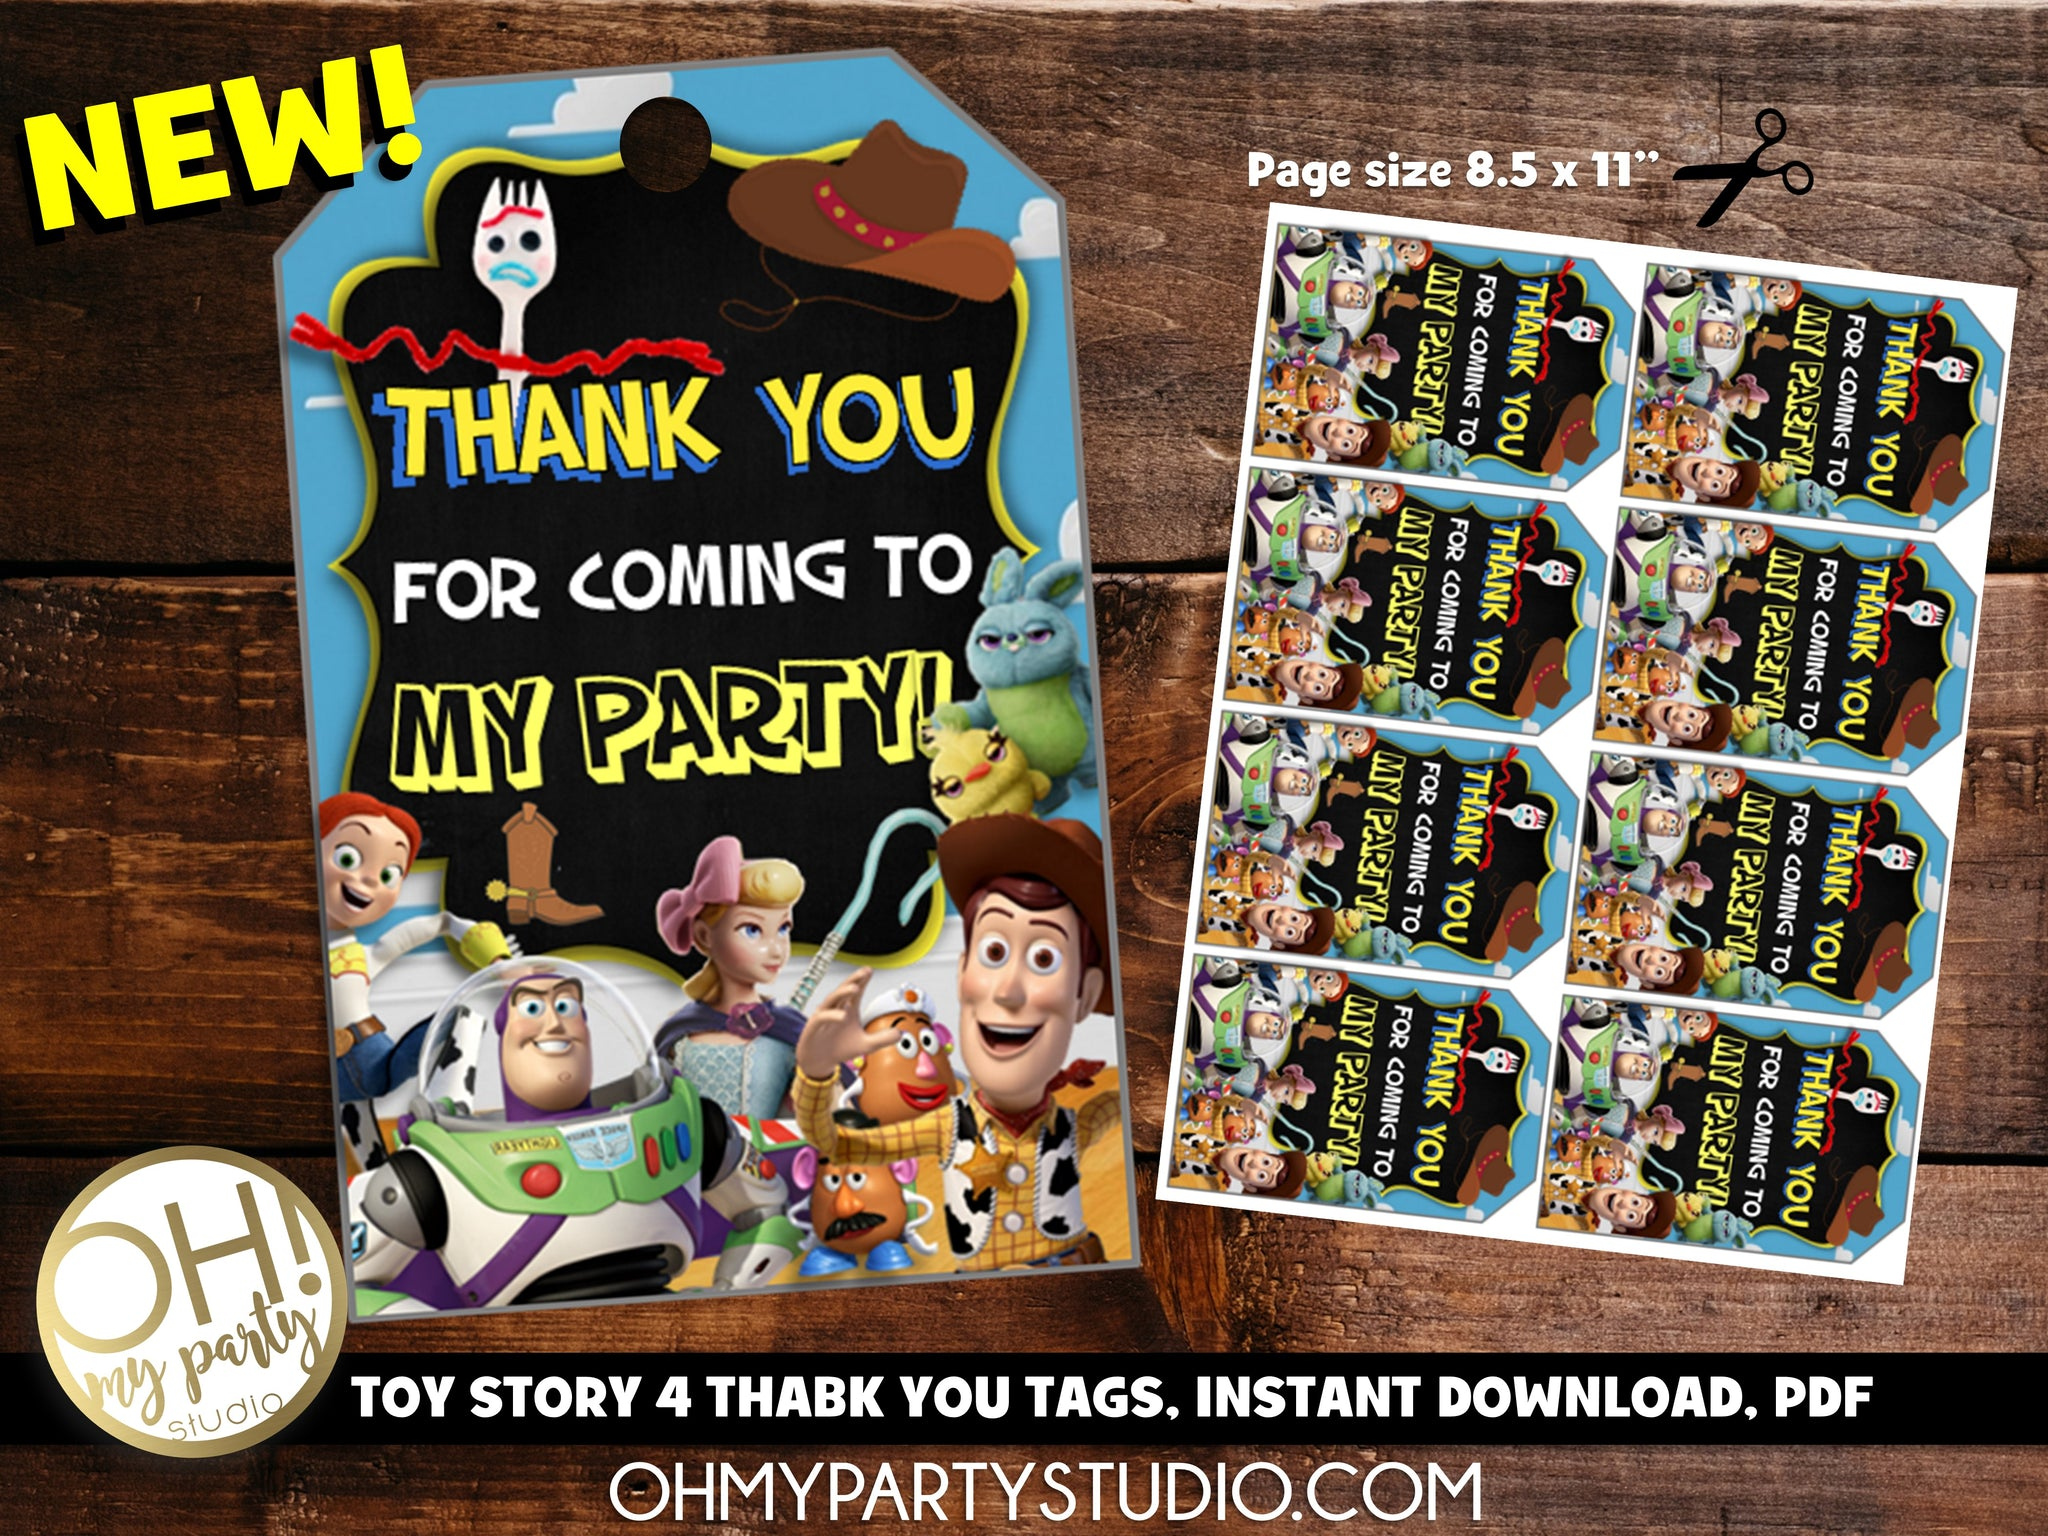 TOY STORY 4 THANK YOU TAGS PERSONALIZED, TOY STORY 4 THANK YOU TAGS, TOY STORY THANK YOU TAGS, TOY STORY 4 PARTY, TOY STORY 4 BIRTHDAY, TOY STORY 4 PARTY IDEAS, TOY STORY 4 PARTY DECORATION, TOY STORY 4 INVITATION, TOY STORY 4 INVITATIONS, TOY STORY 4 BIRTHDAY, TOY STORY 4 PRINTABLES, TOY STORY 4 INVITE